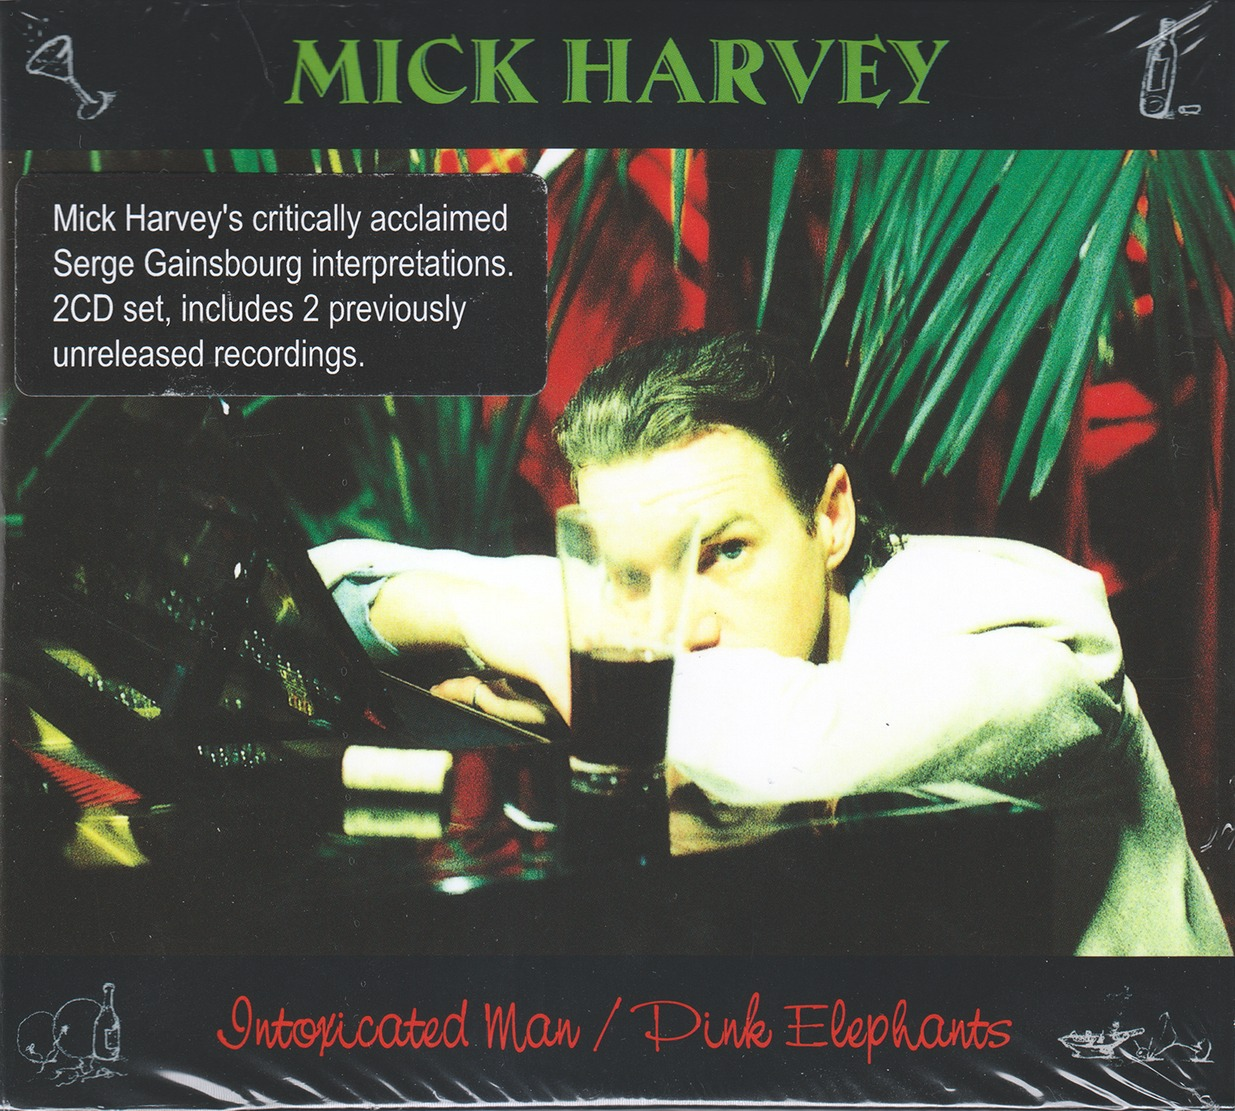 Mick Harvey - Intoxicated Man & Pink Elephants (2014) {2CD Set Mute Records CDSTUMM331 rel 1995, 1997}